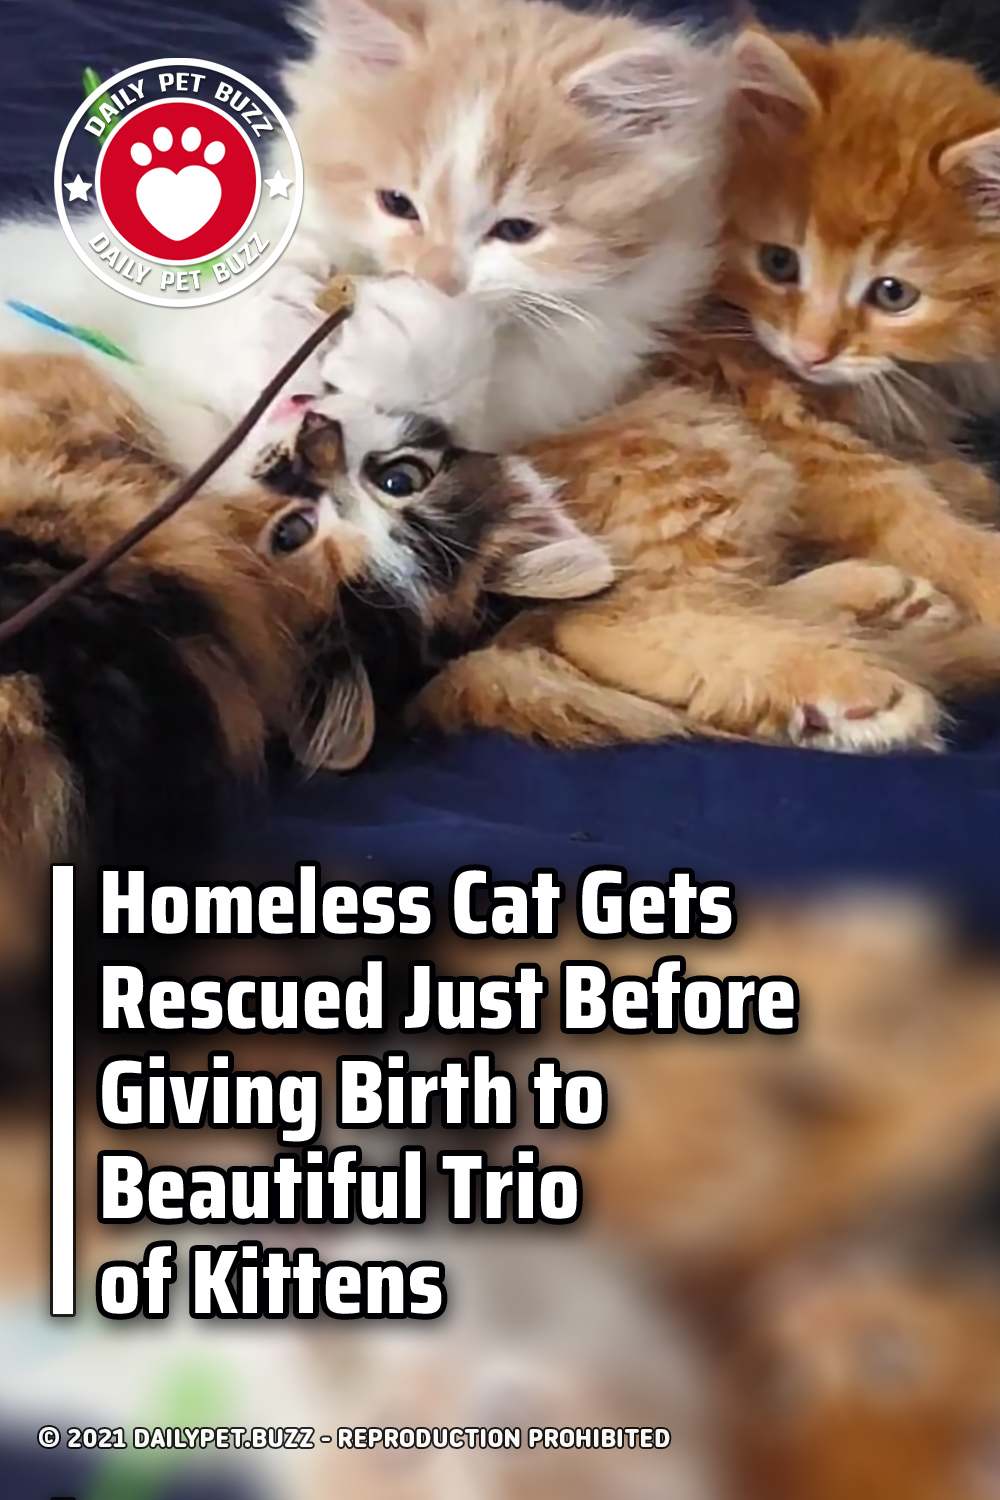 Homeless Cat Gets Rescued Just Before Giving Birth to Beautiful Trio of Kittens